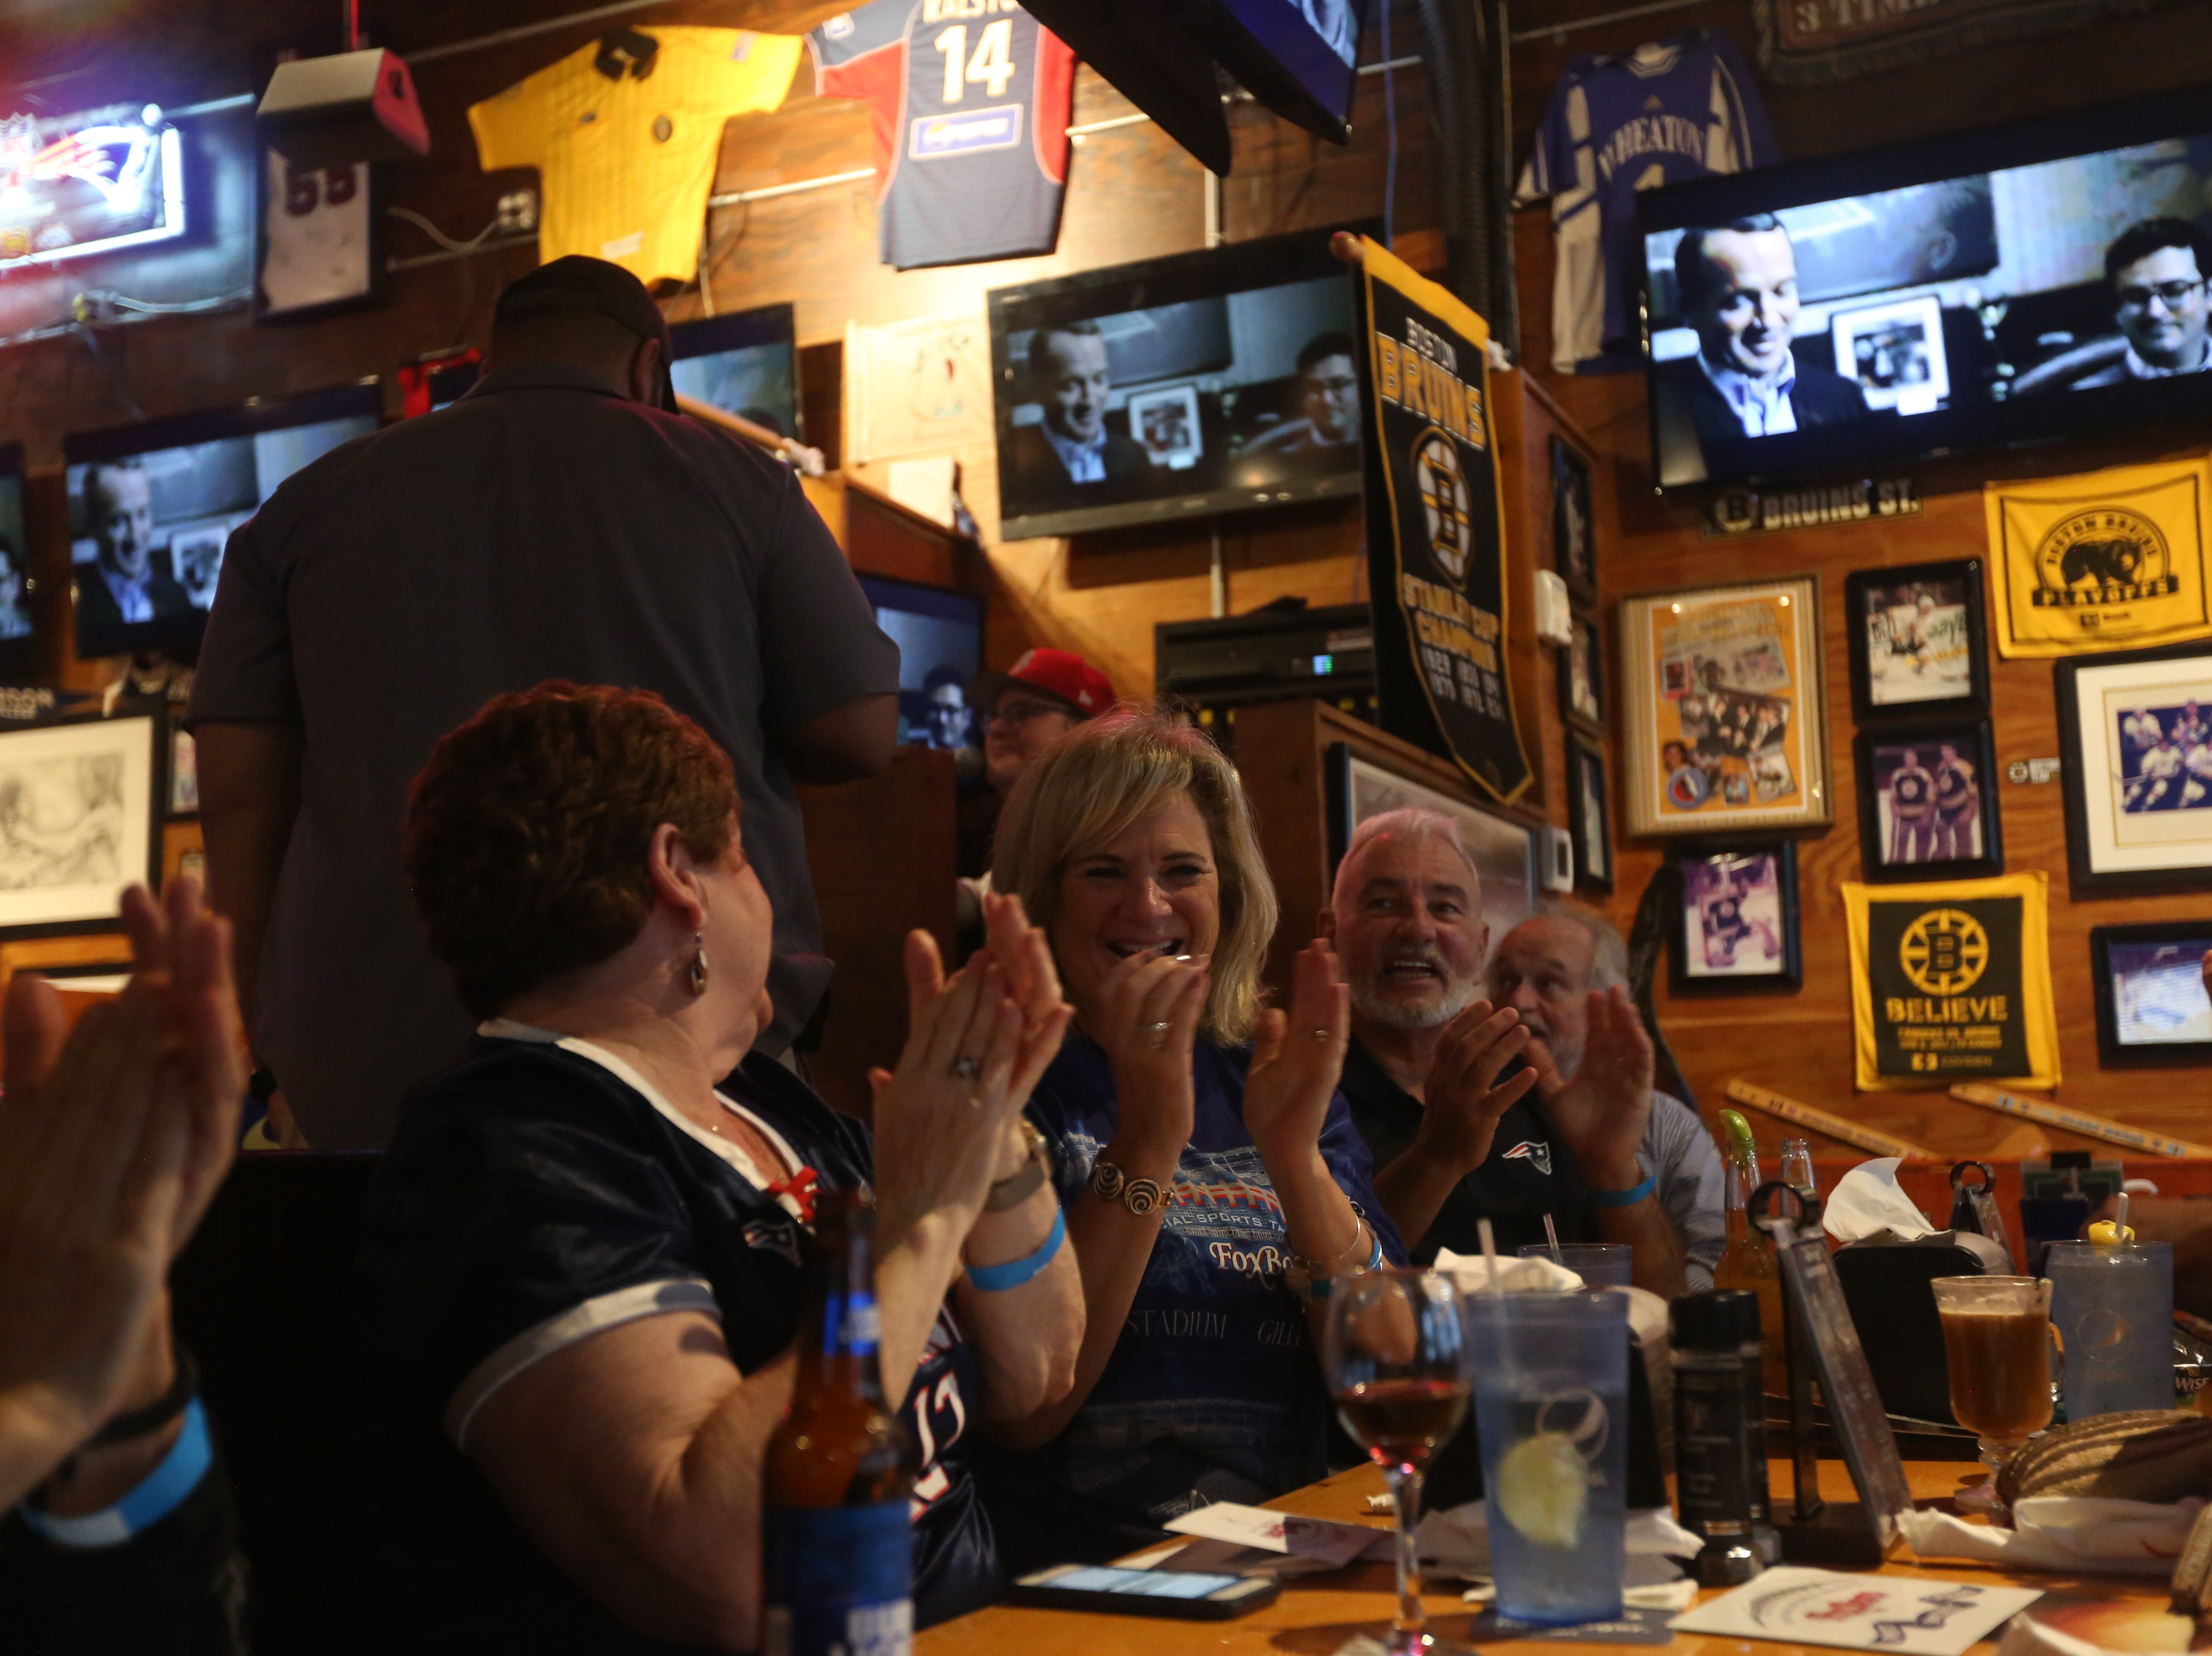 Monica Bradlee and Karen Kolozs, both of Naples, cheer on the New England Patriots at the Foxboro Sports Tavern in East Naples on Sunday, Feb. 3, 2019.